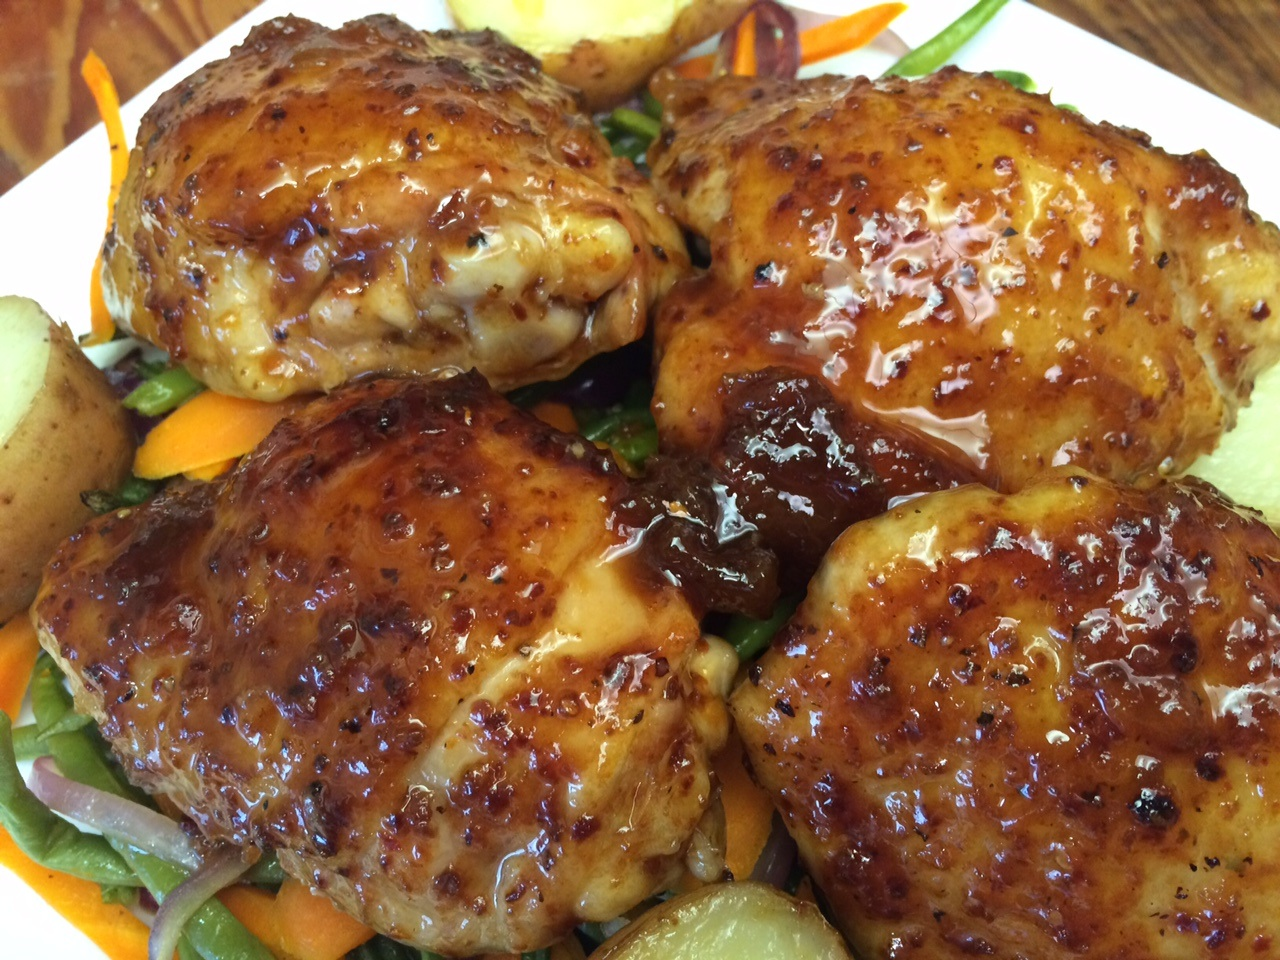 Aleppo Pepper Chicken